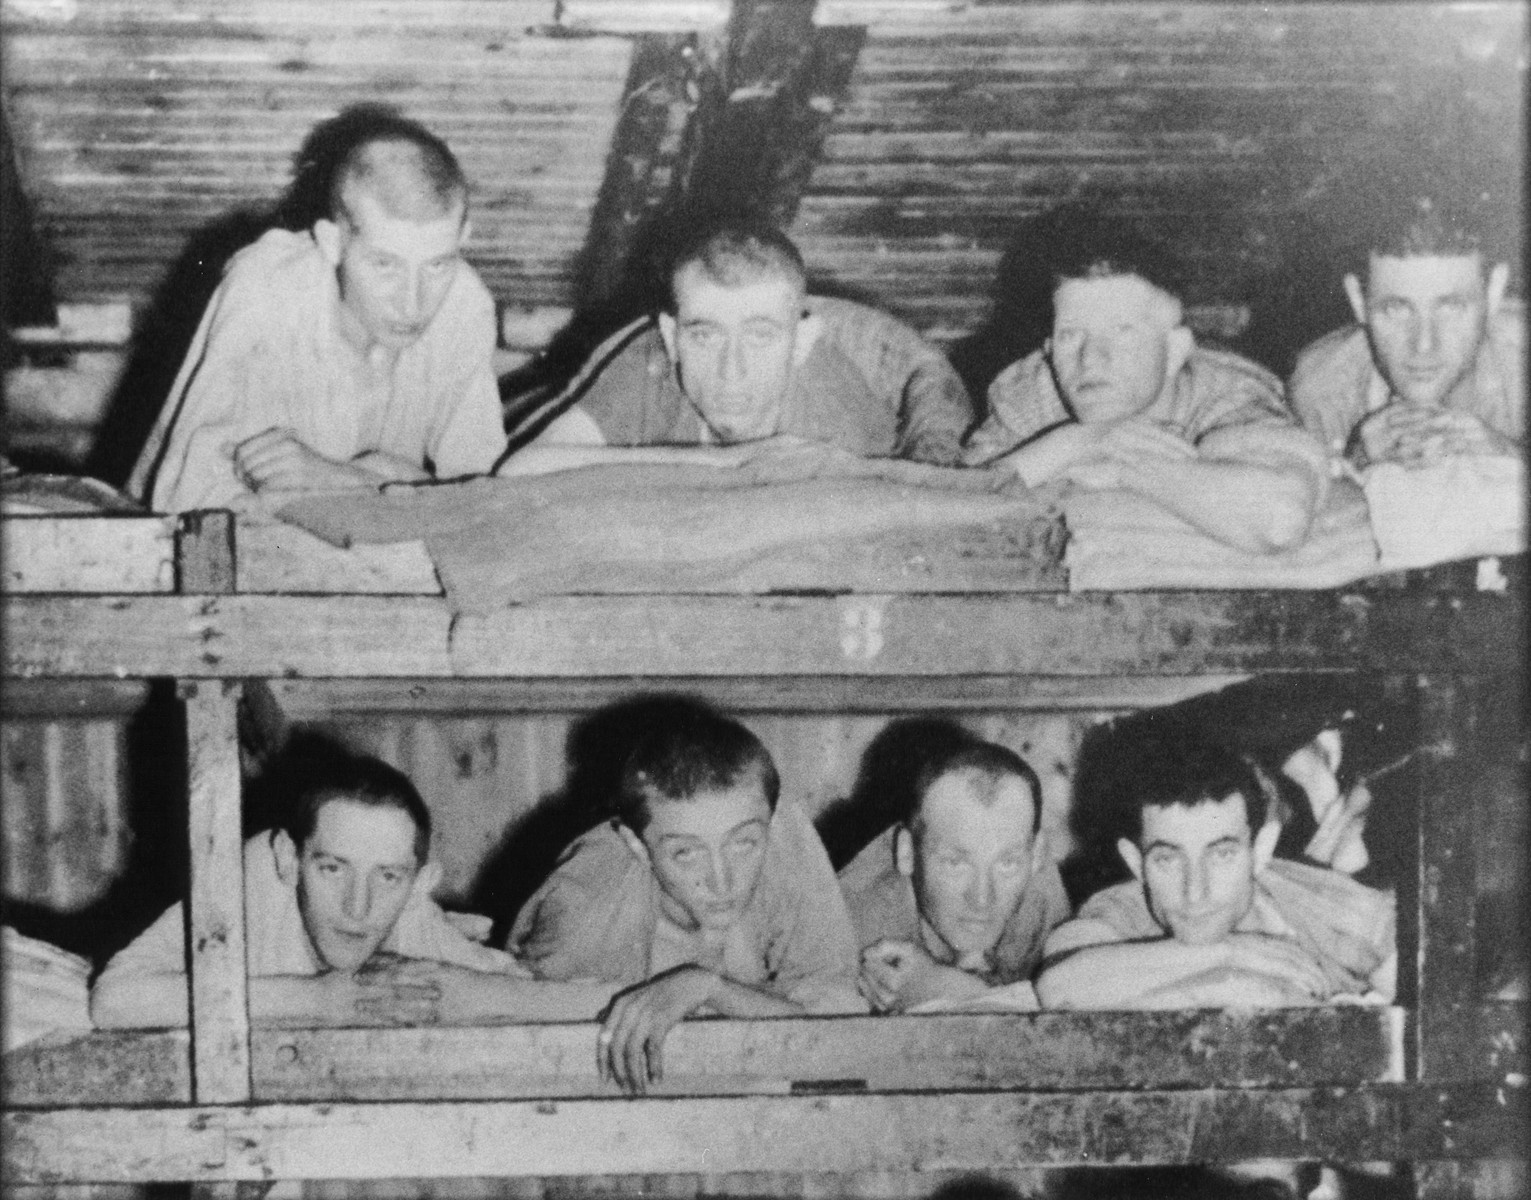 Survivors lie in the top two tiers of a wooden bunk in a barracks in the Buchenwald concentration camp.